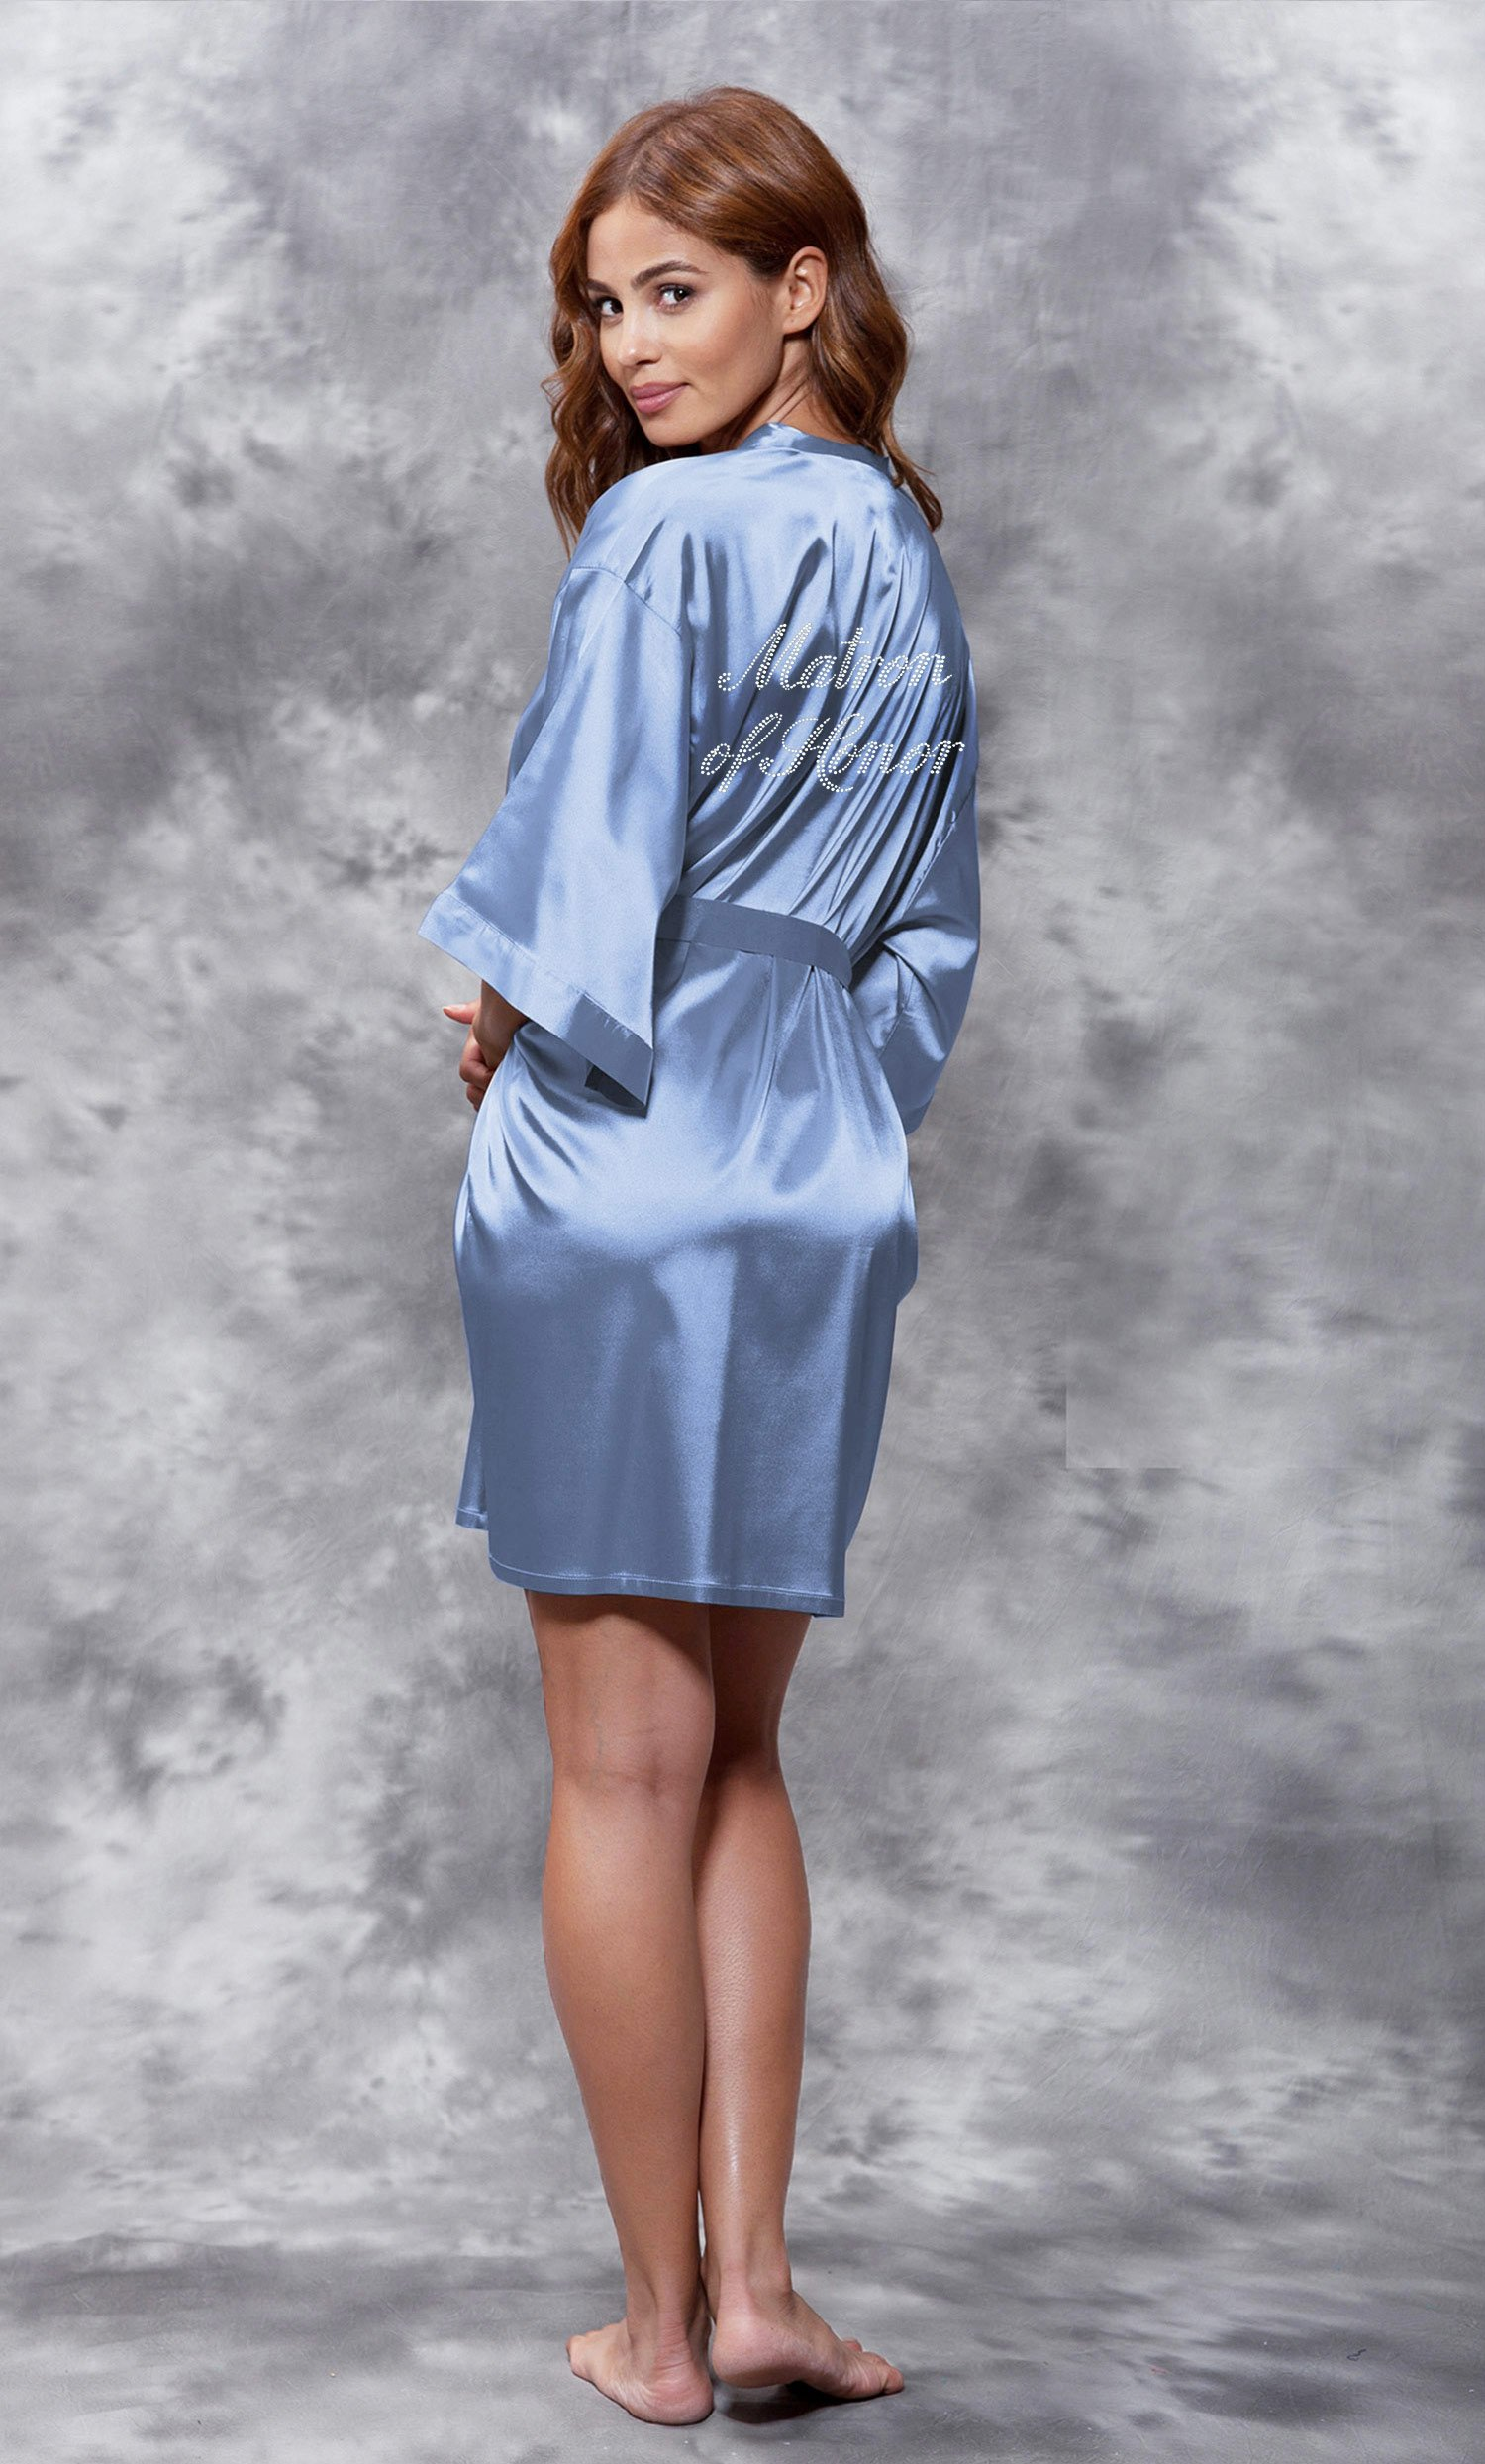 Matron of Honor Clear Rhinestone Satin Kimono Riverside Blue Short Robe-Robemart.com